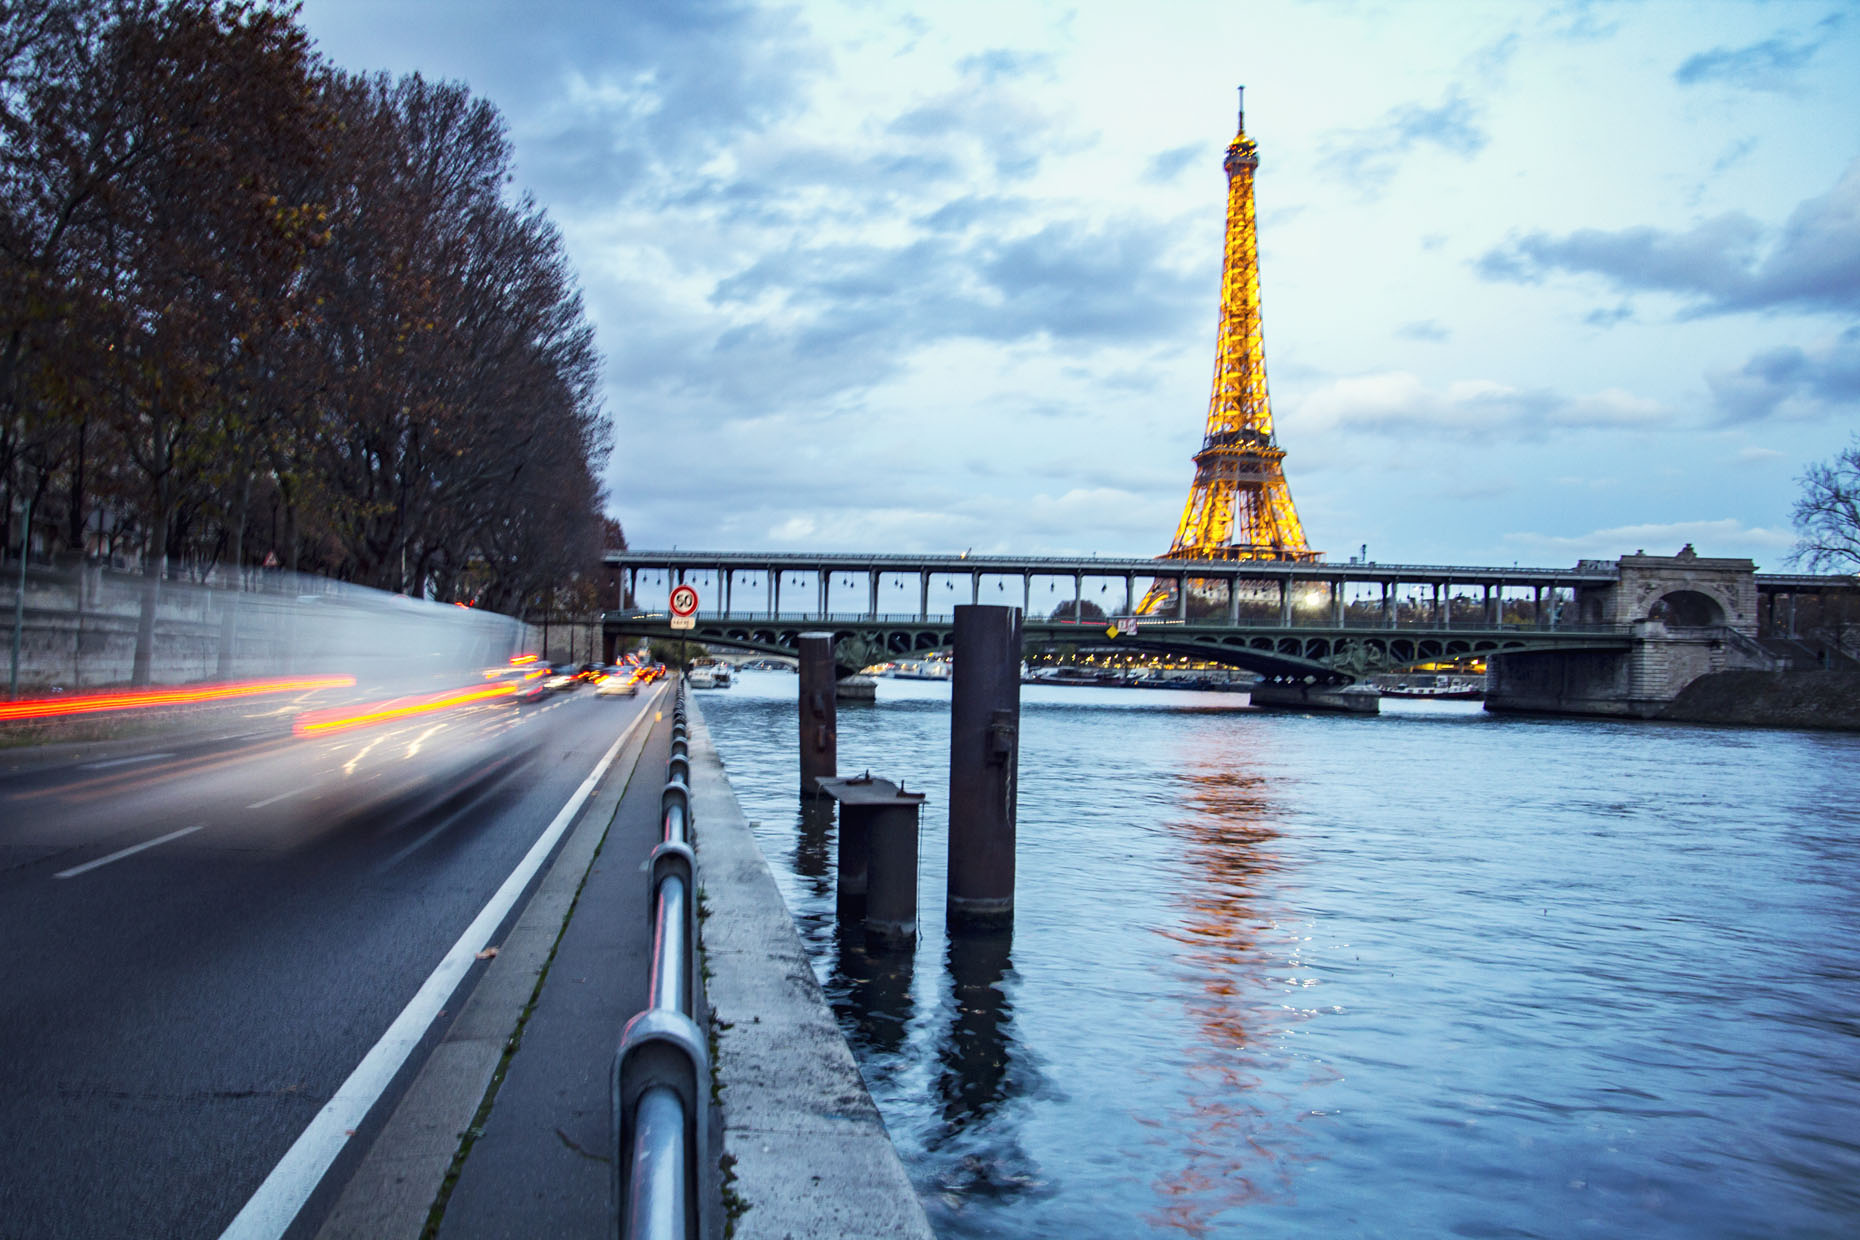 France_Paris_EiffelTowerTwilight_03_webuse.jpg